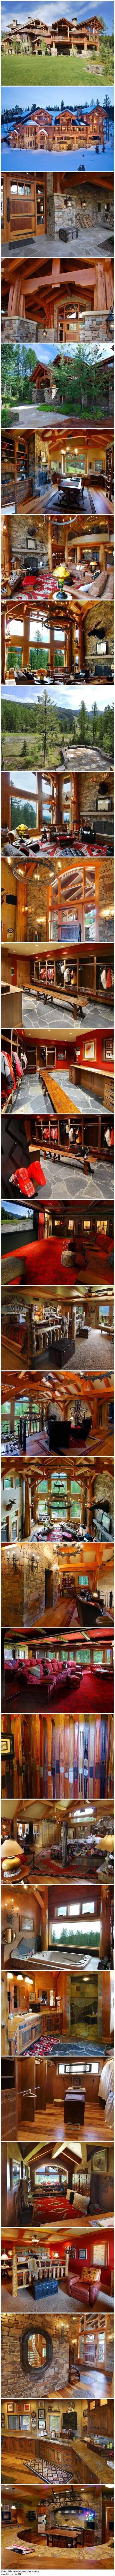 The Ultimate Mountain Home   When can I move in?